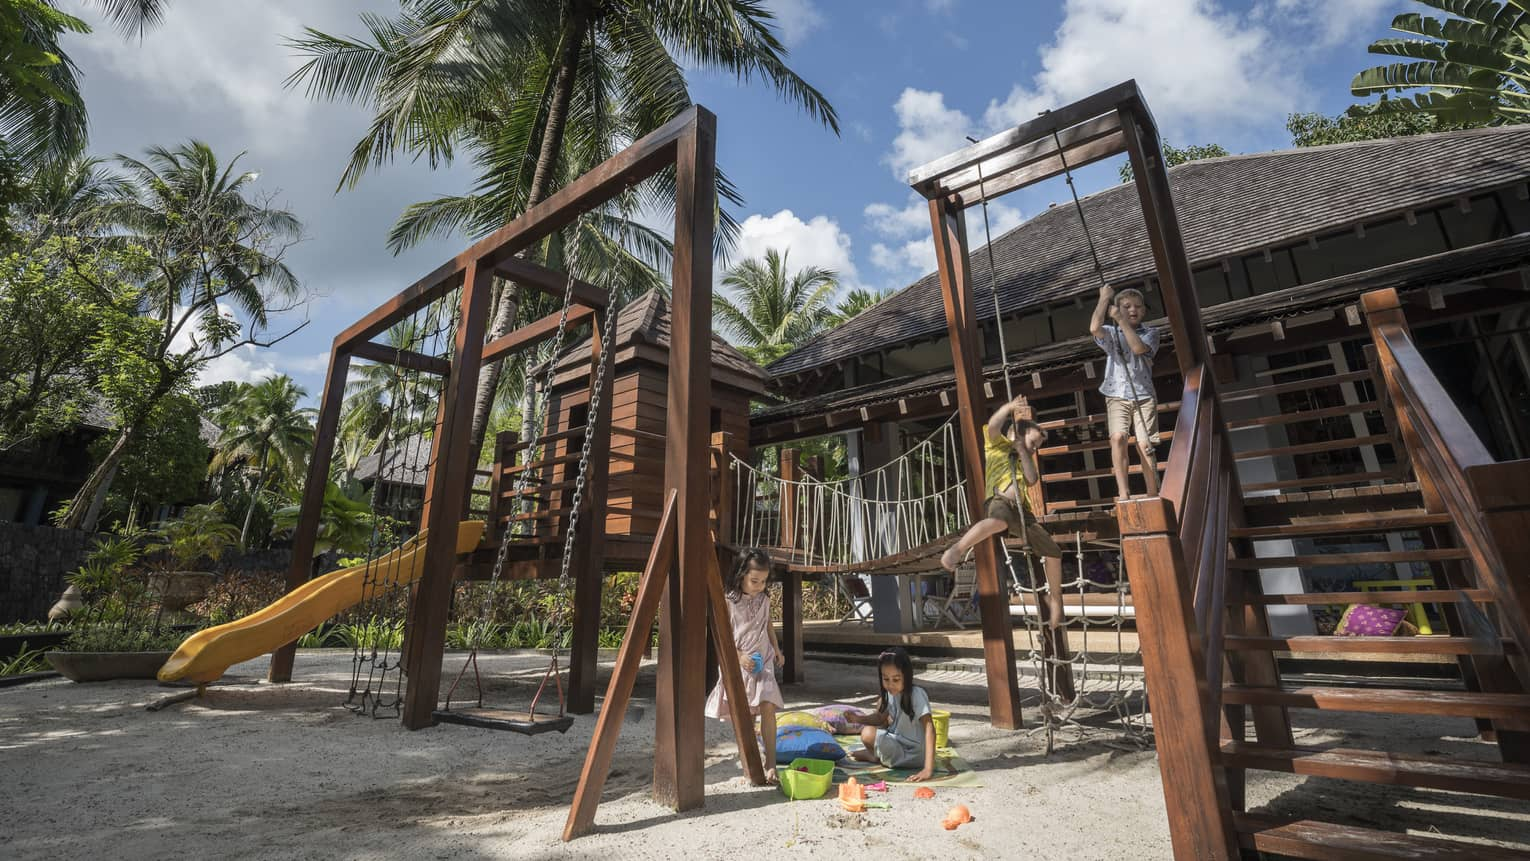 Kids playing on the play set in the kids club at Four Seasons Langkawi